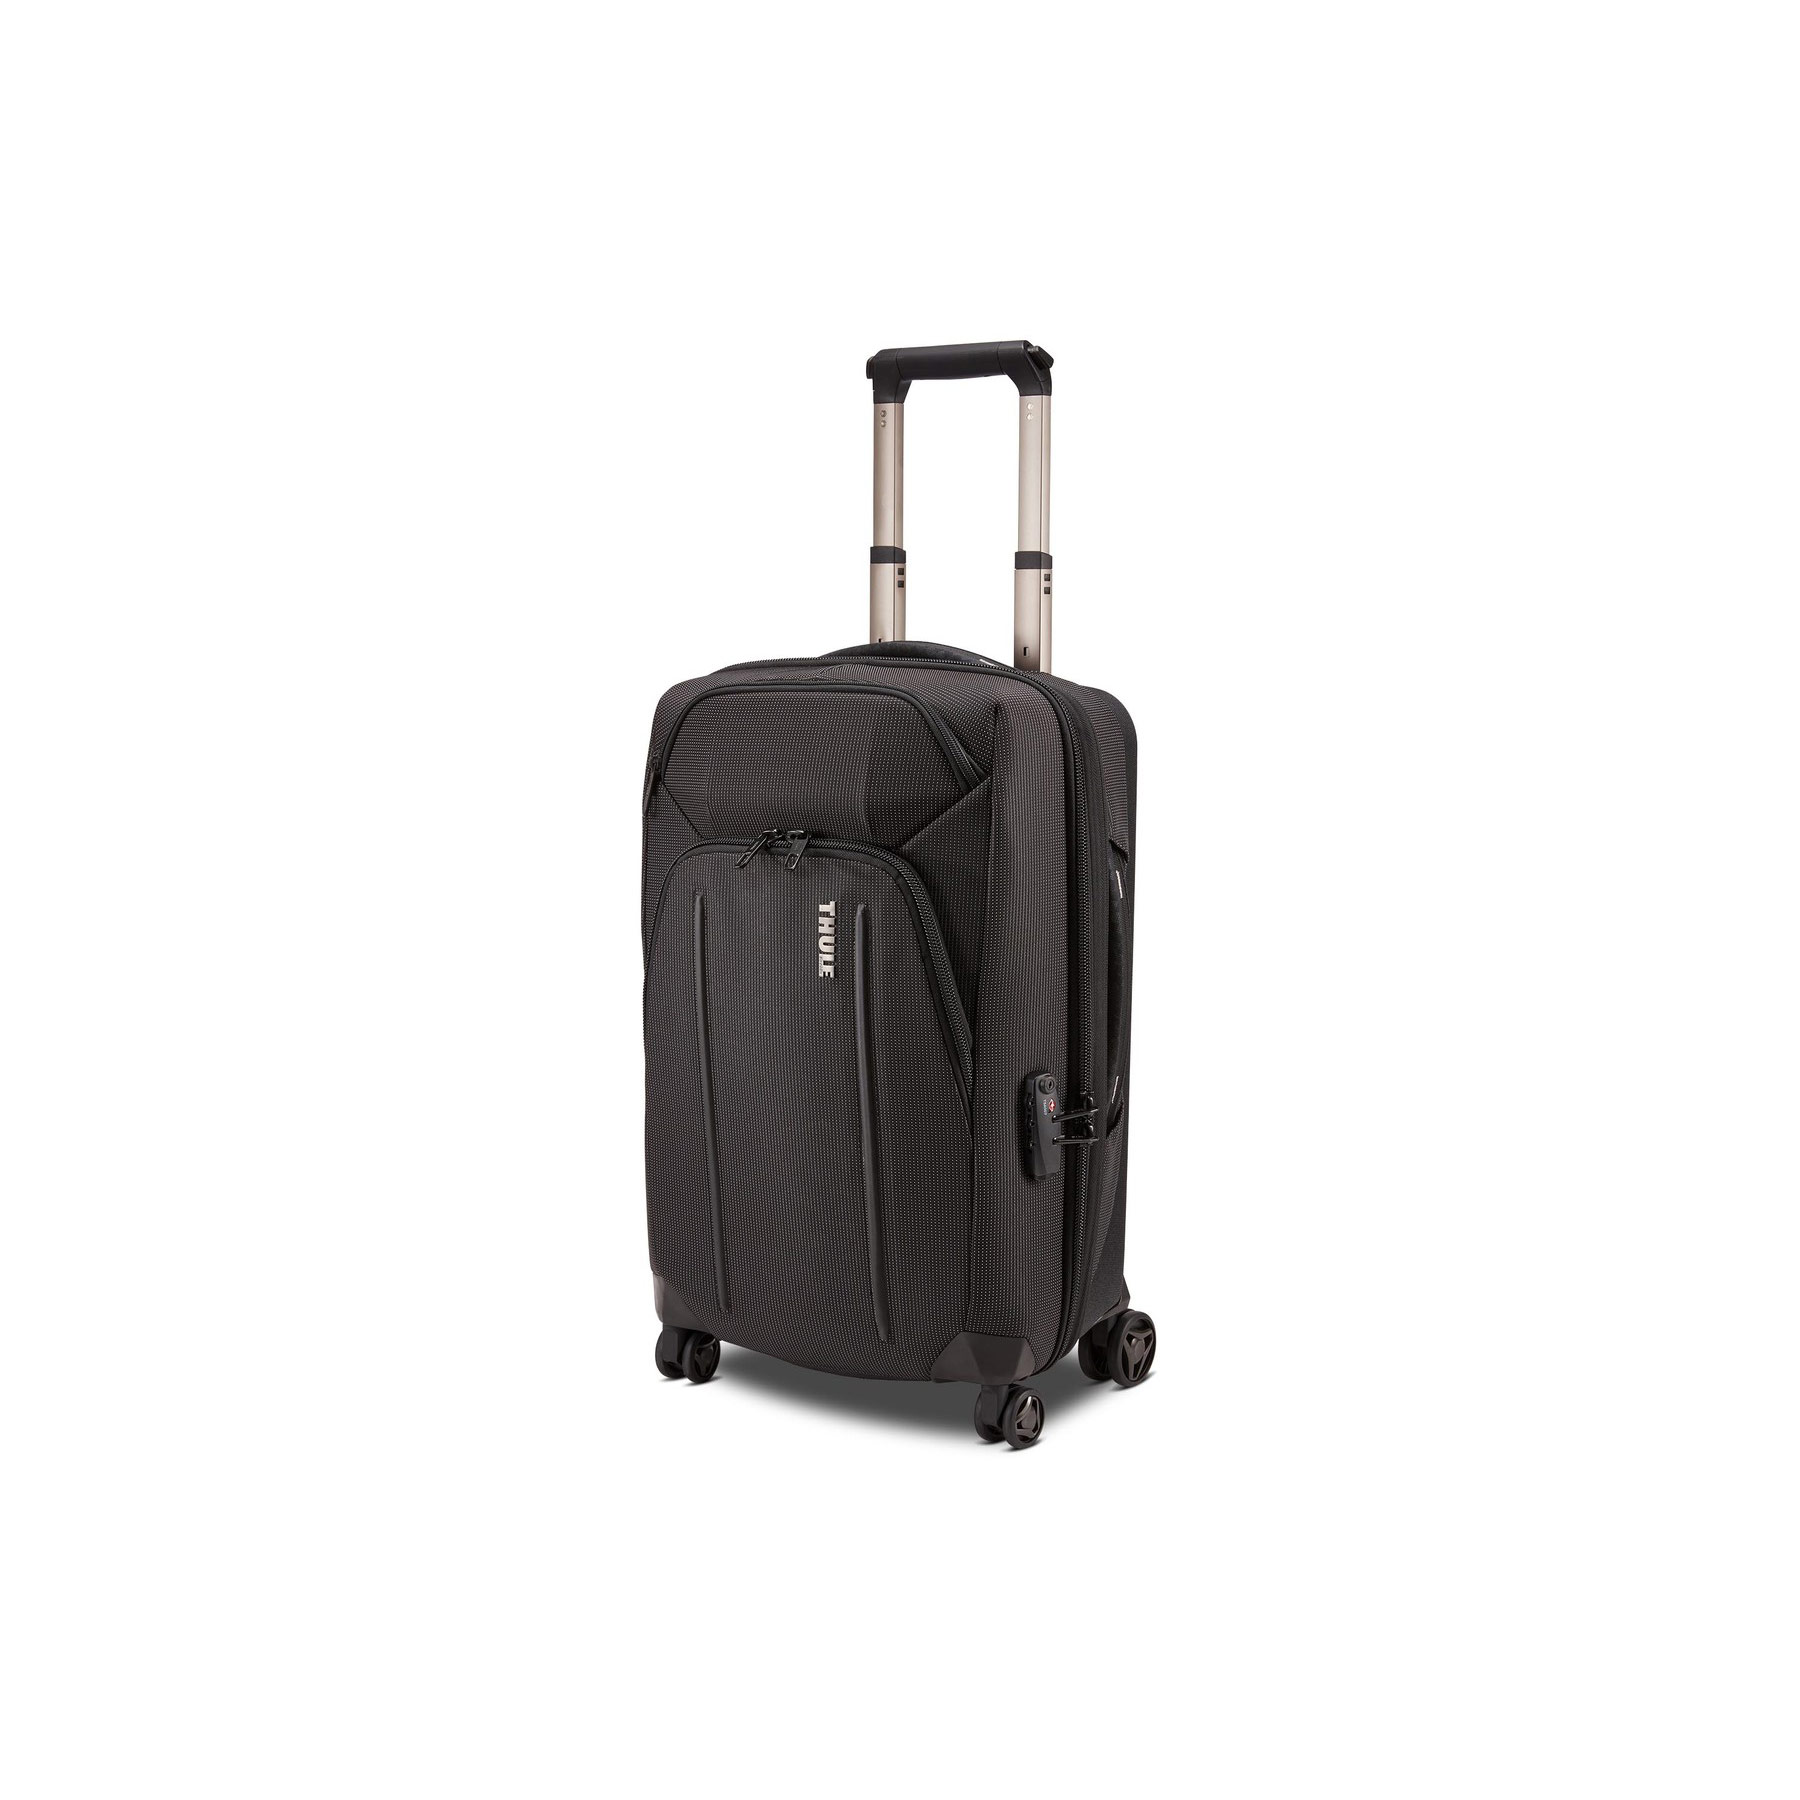 Crossover 2 Carry On Spinner - Black